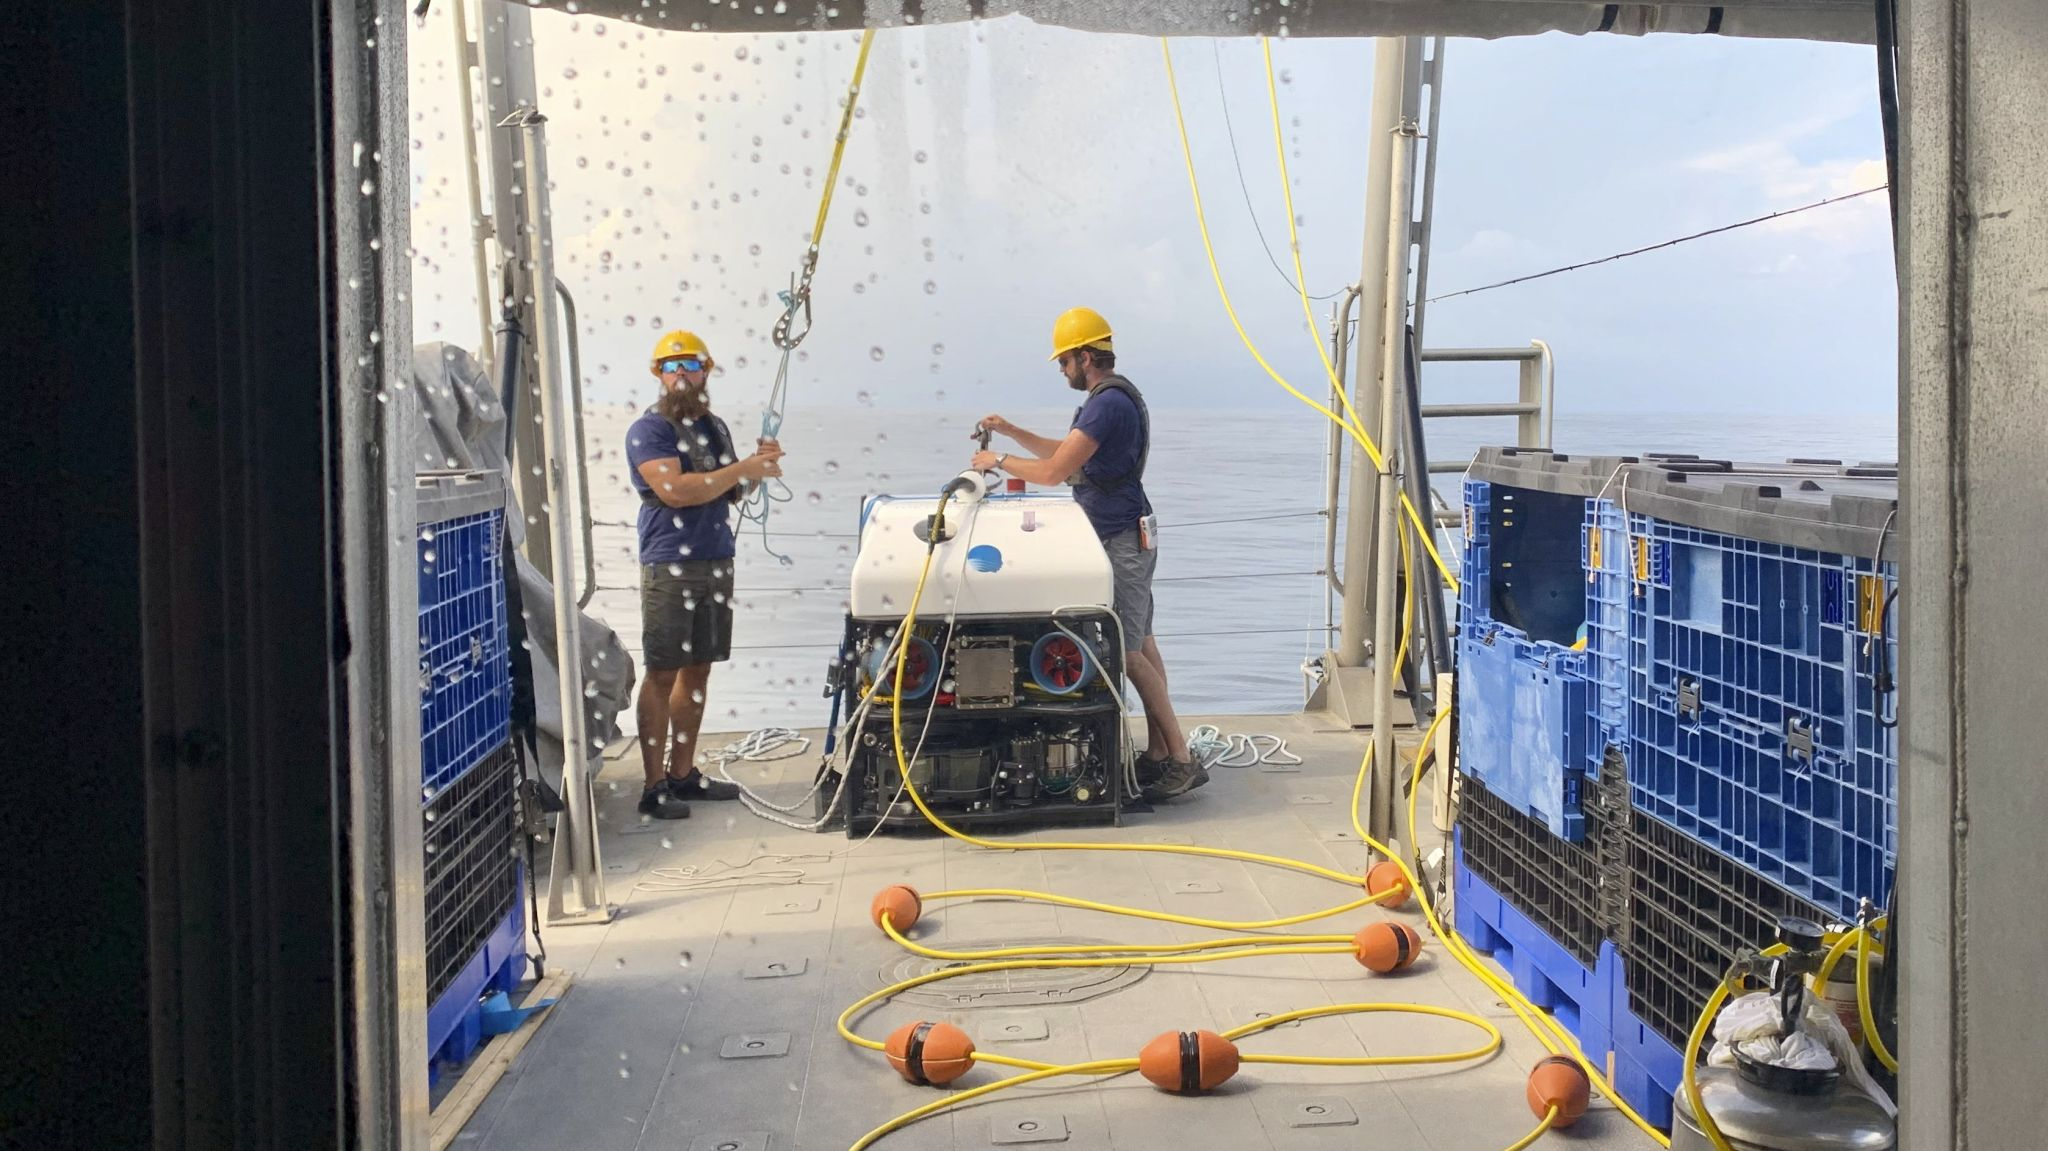 Broadcasting the Ocean's Depths: Search for coral involves high-tech imaging, lots of coffee - Houston Chronicle